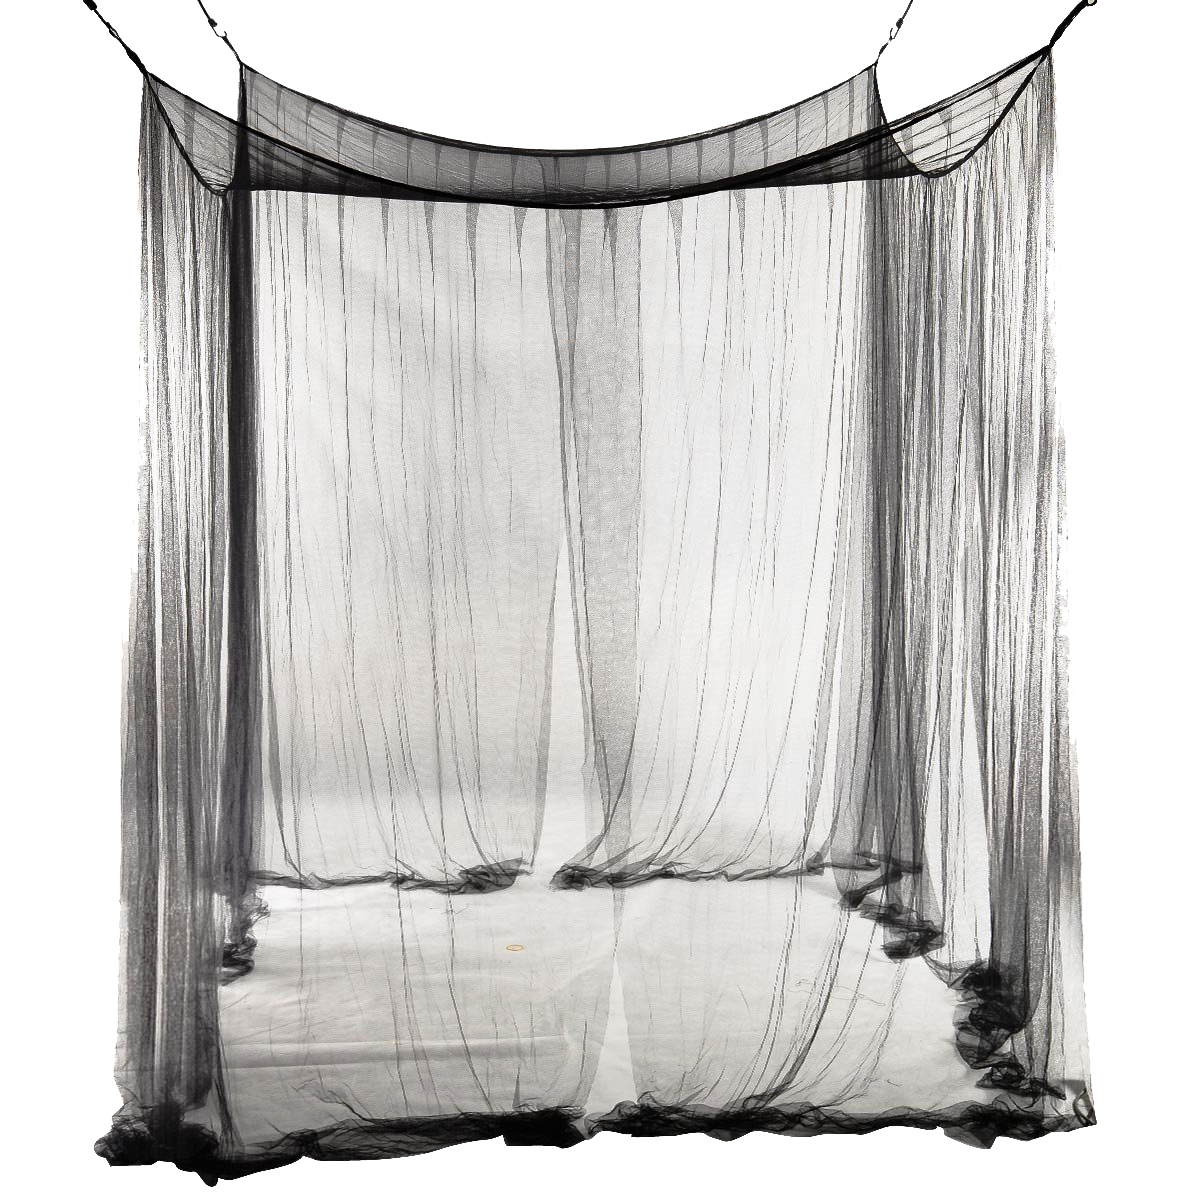 4-Corner Bed Netting Canopy Mosquito Net for Queen/King Sized Bed 190*210*240cm (Black) maquina de coser de mano